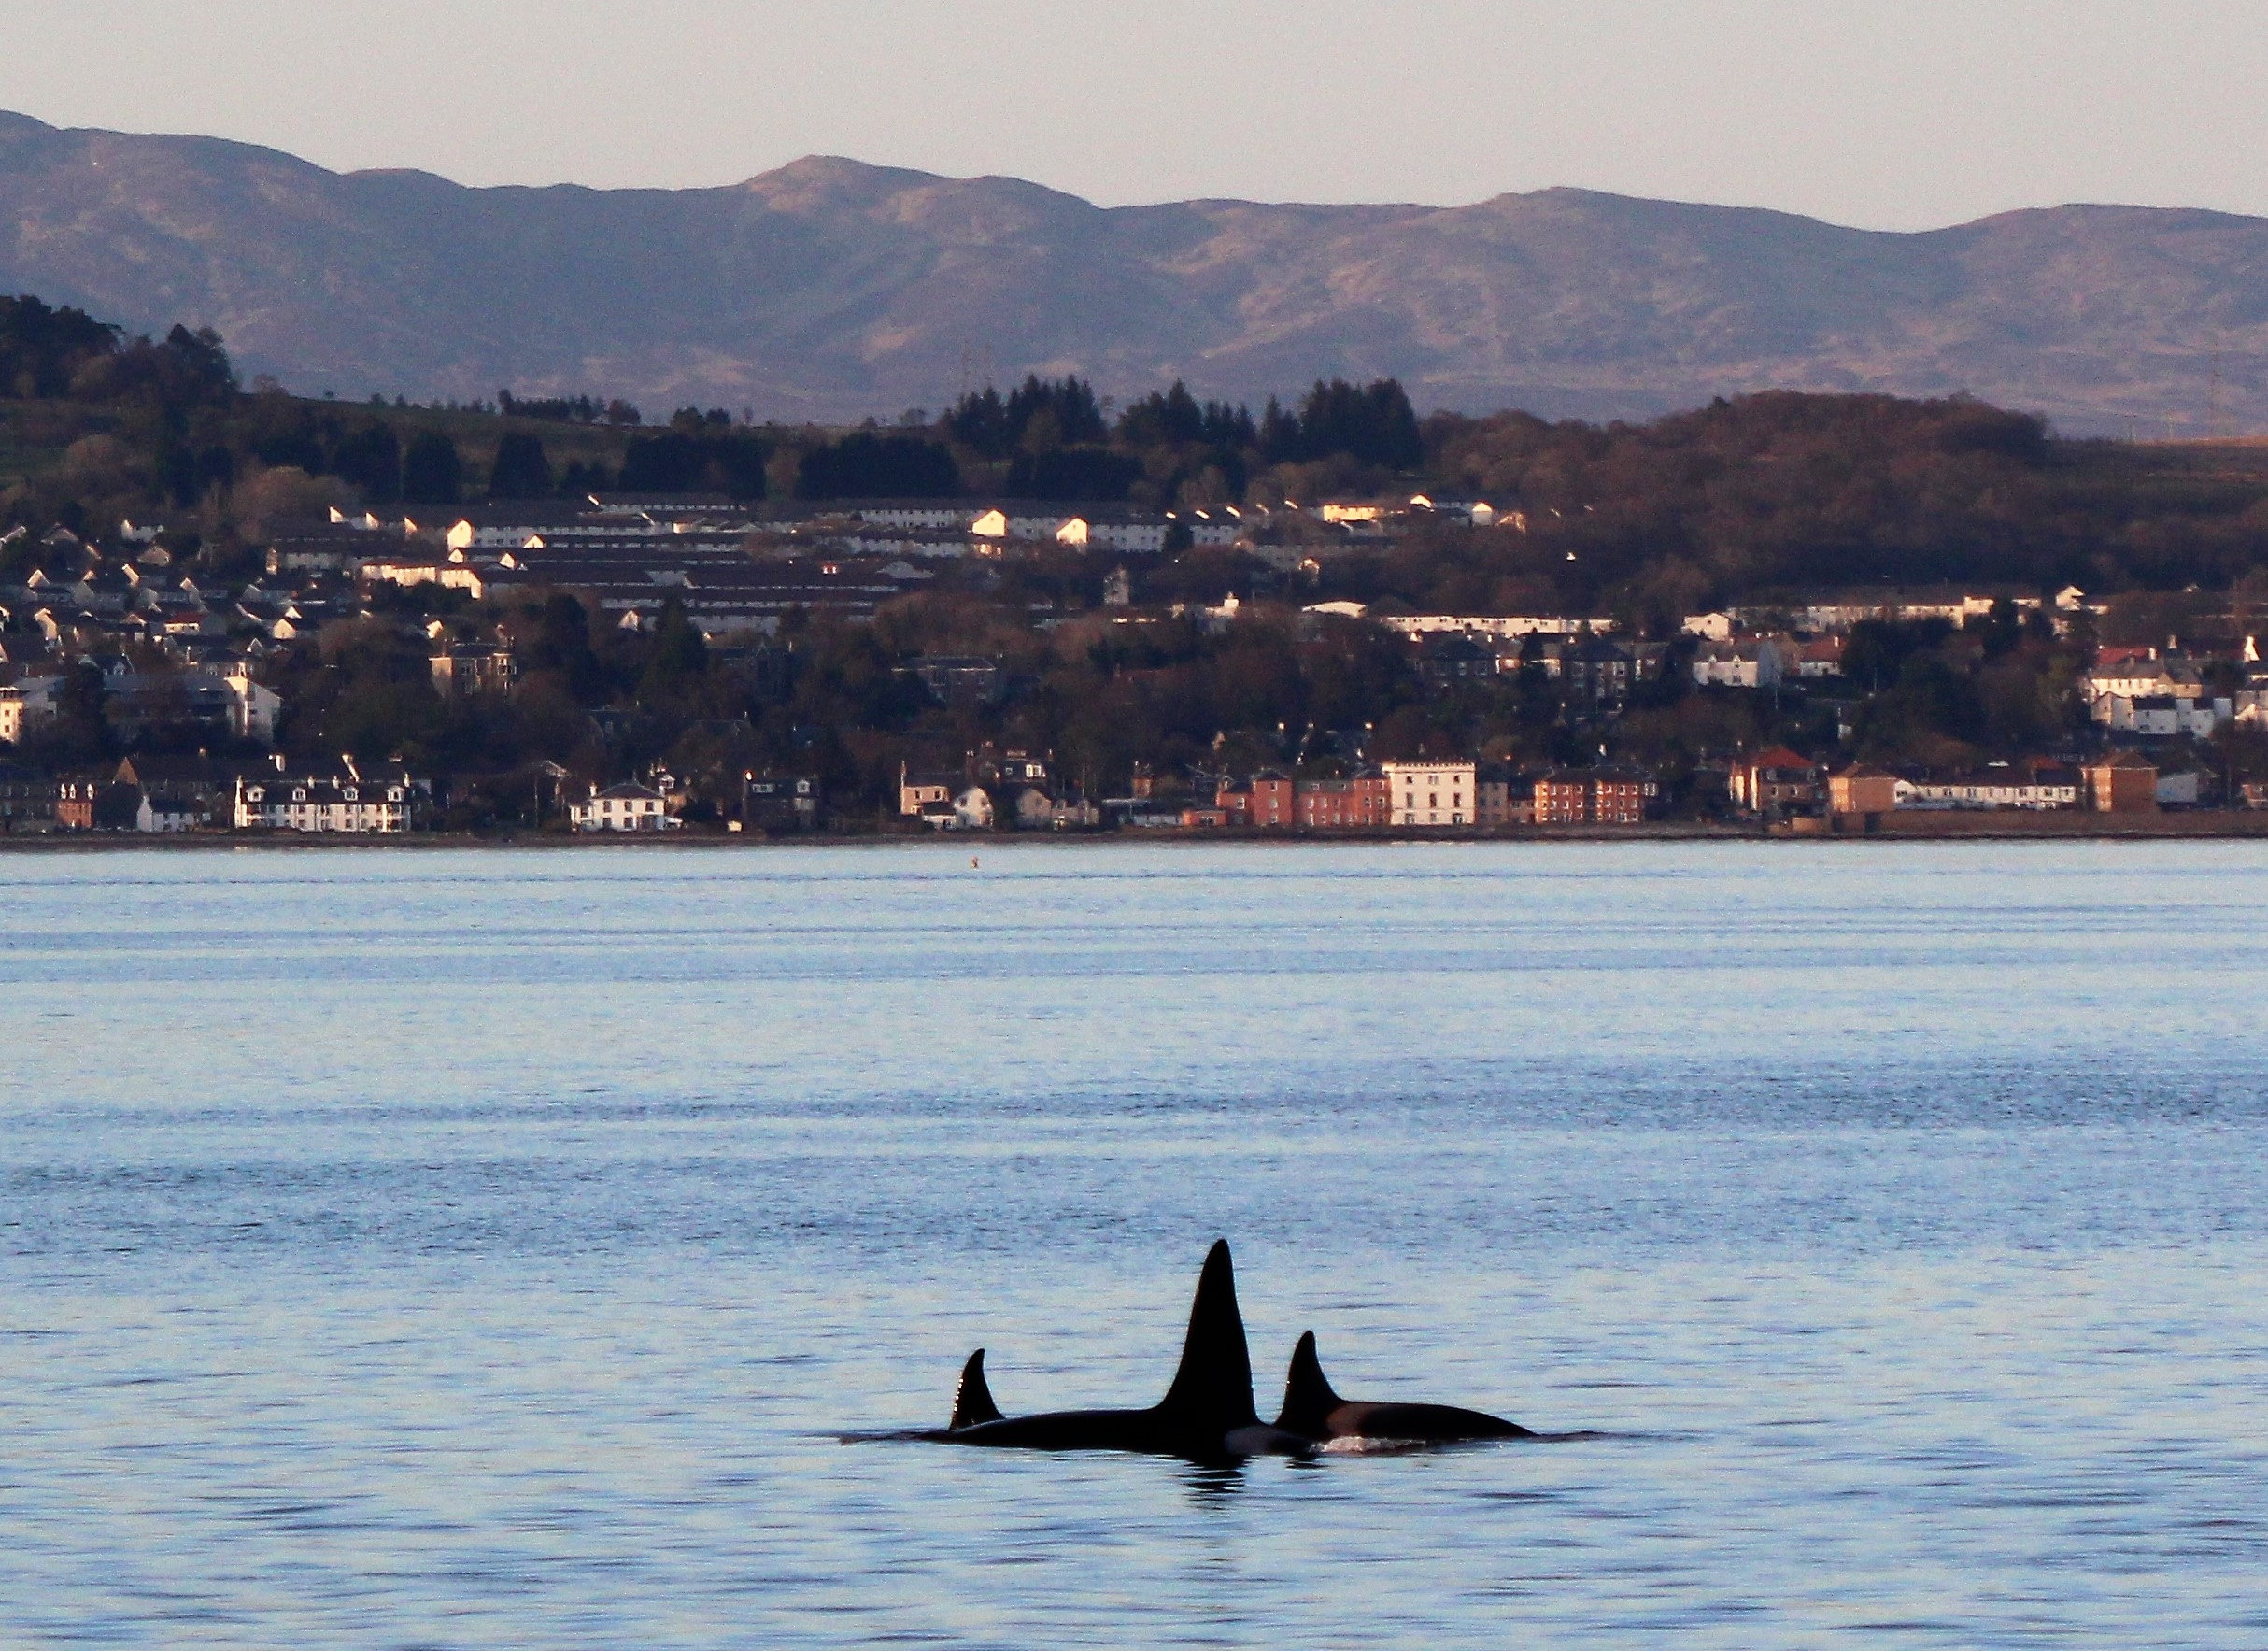 Orca in the bay